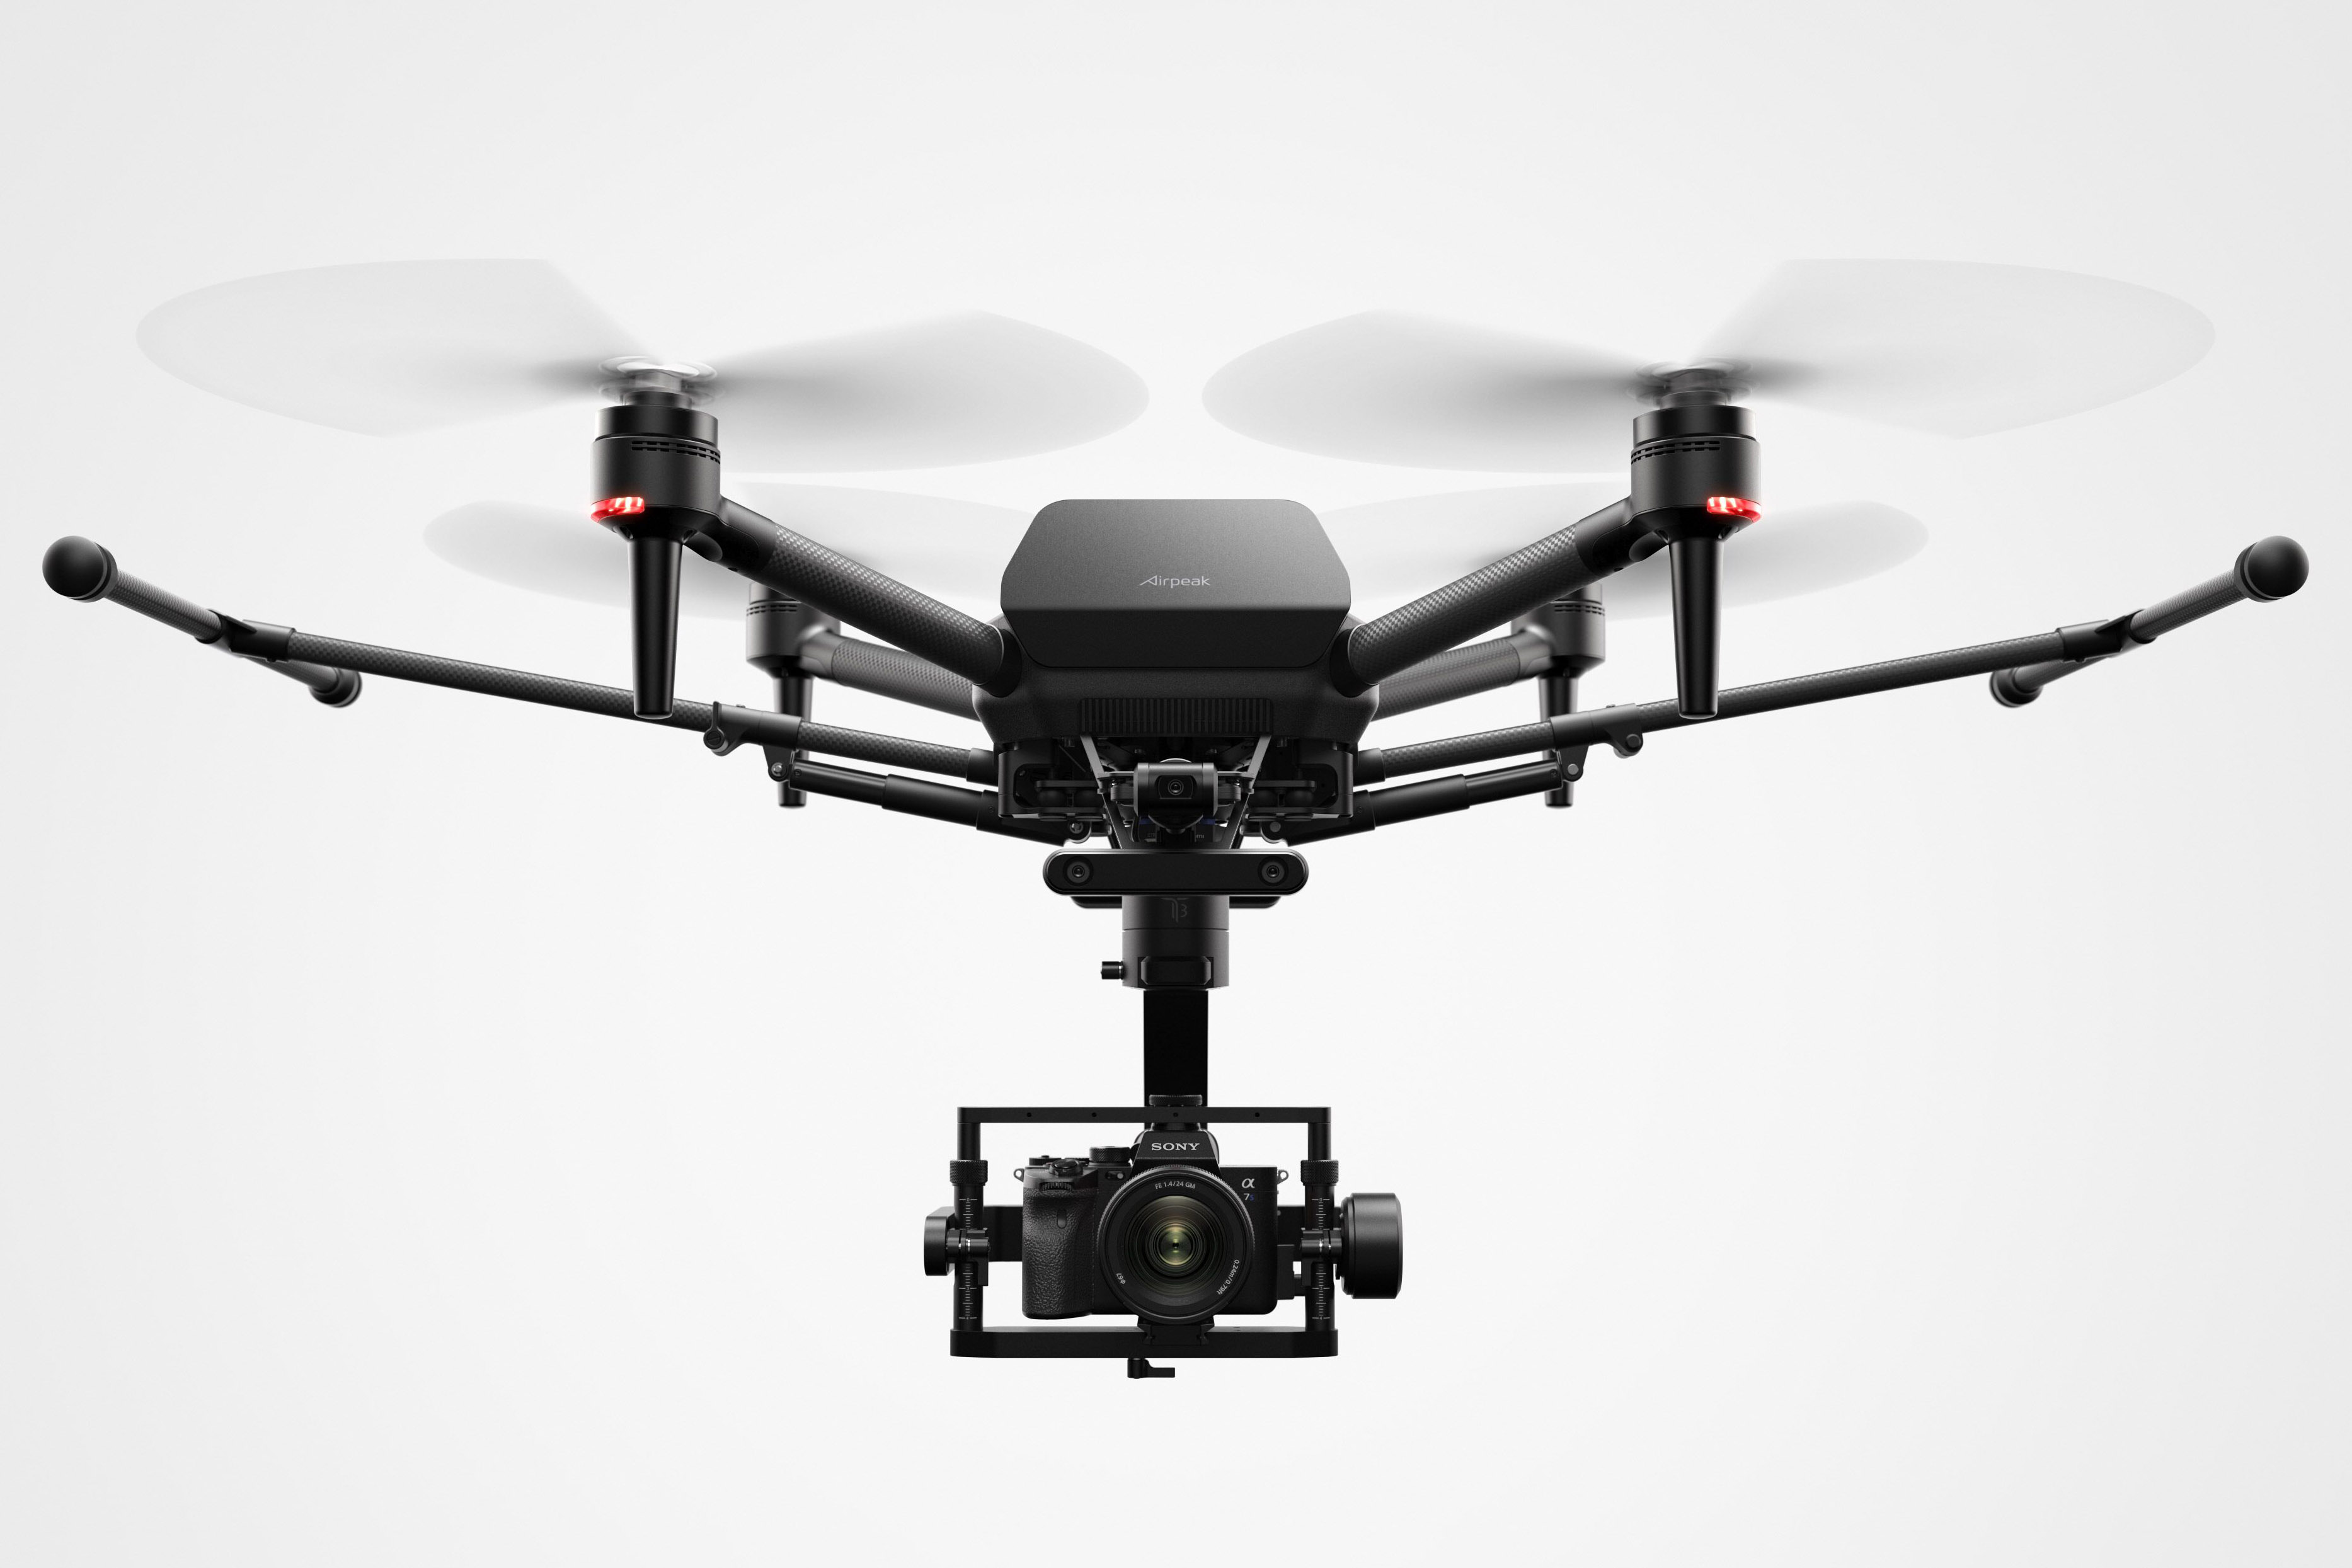 Sony is starting a new drone business called Airpeak, dedicated to flying its Alpha cameras in professional filmmaking settings